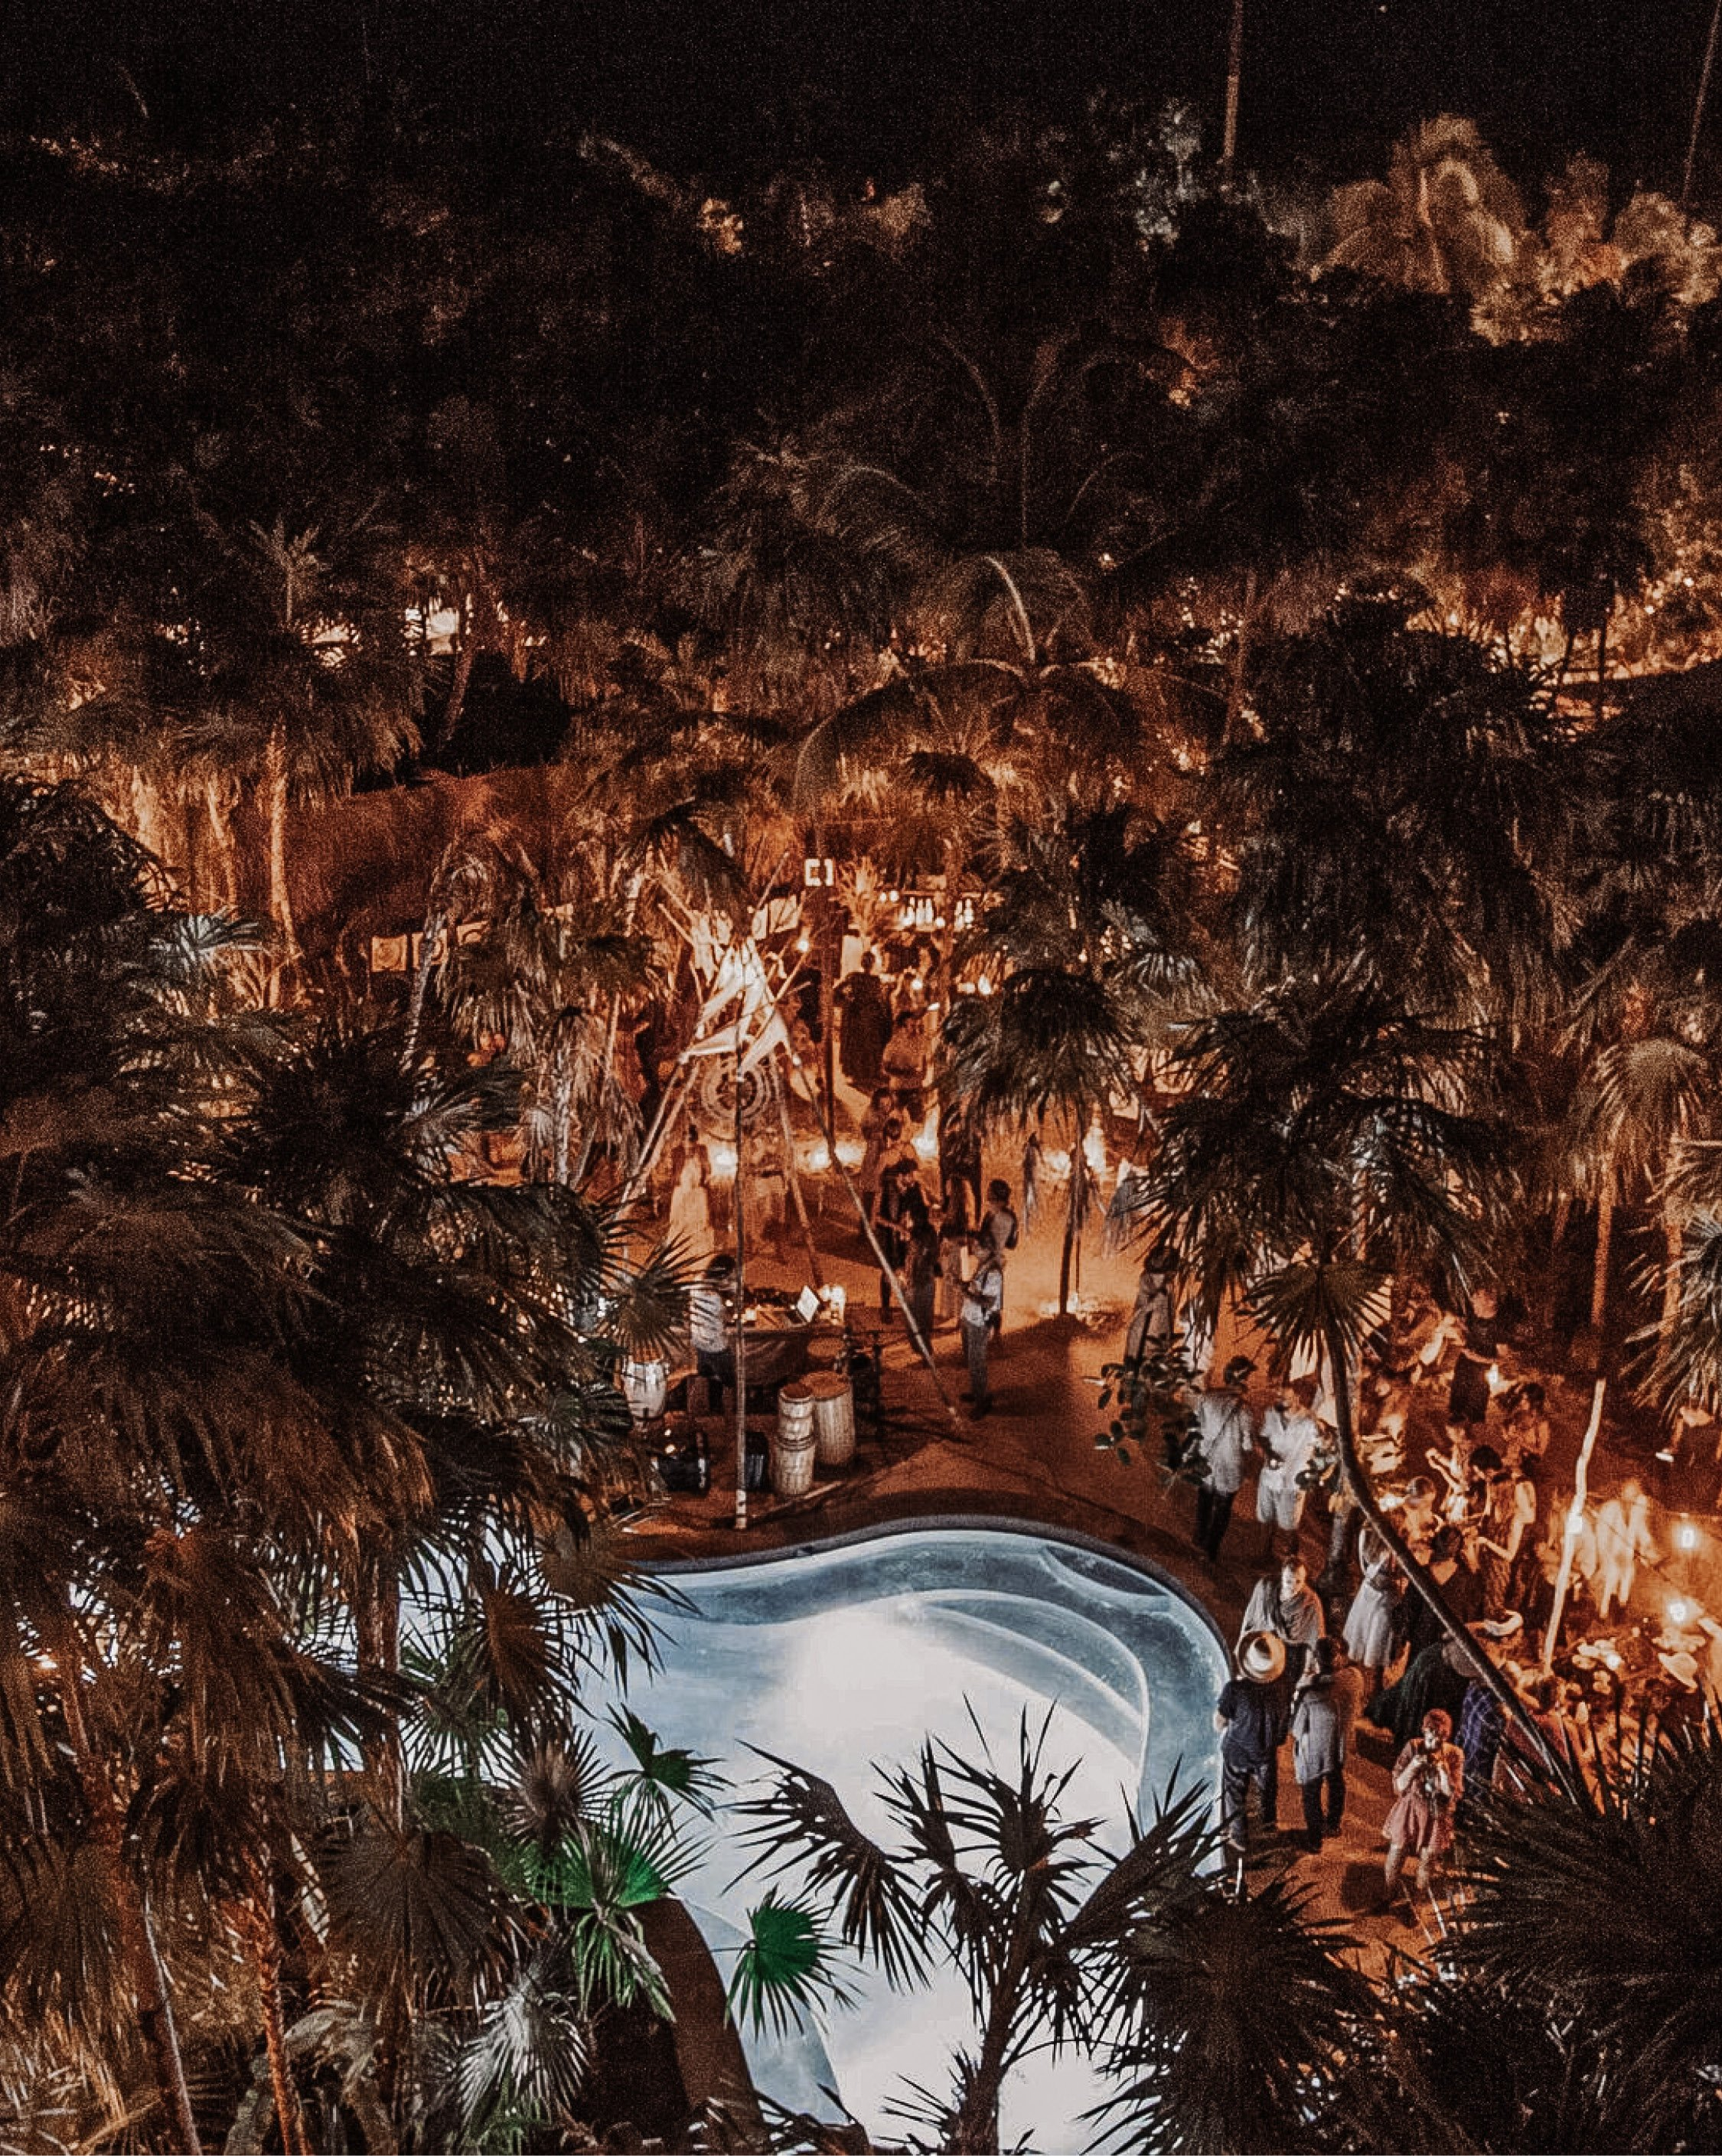 Our Scorpios Sunset Ritual at Tulum Treehouse, featuring a live set from Uji.